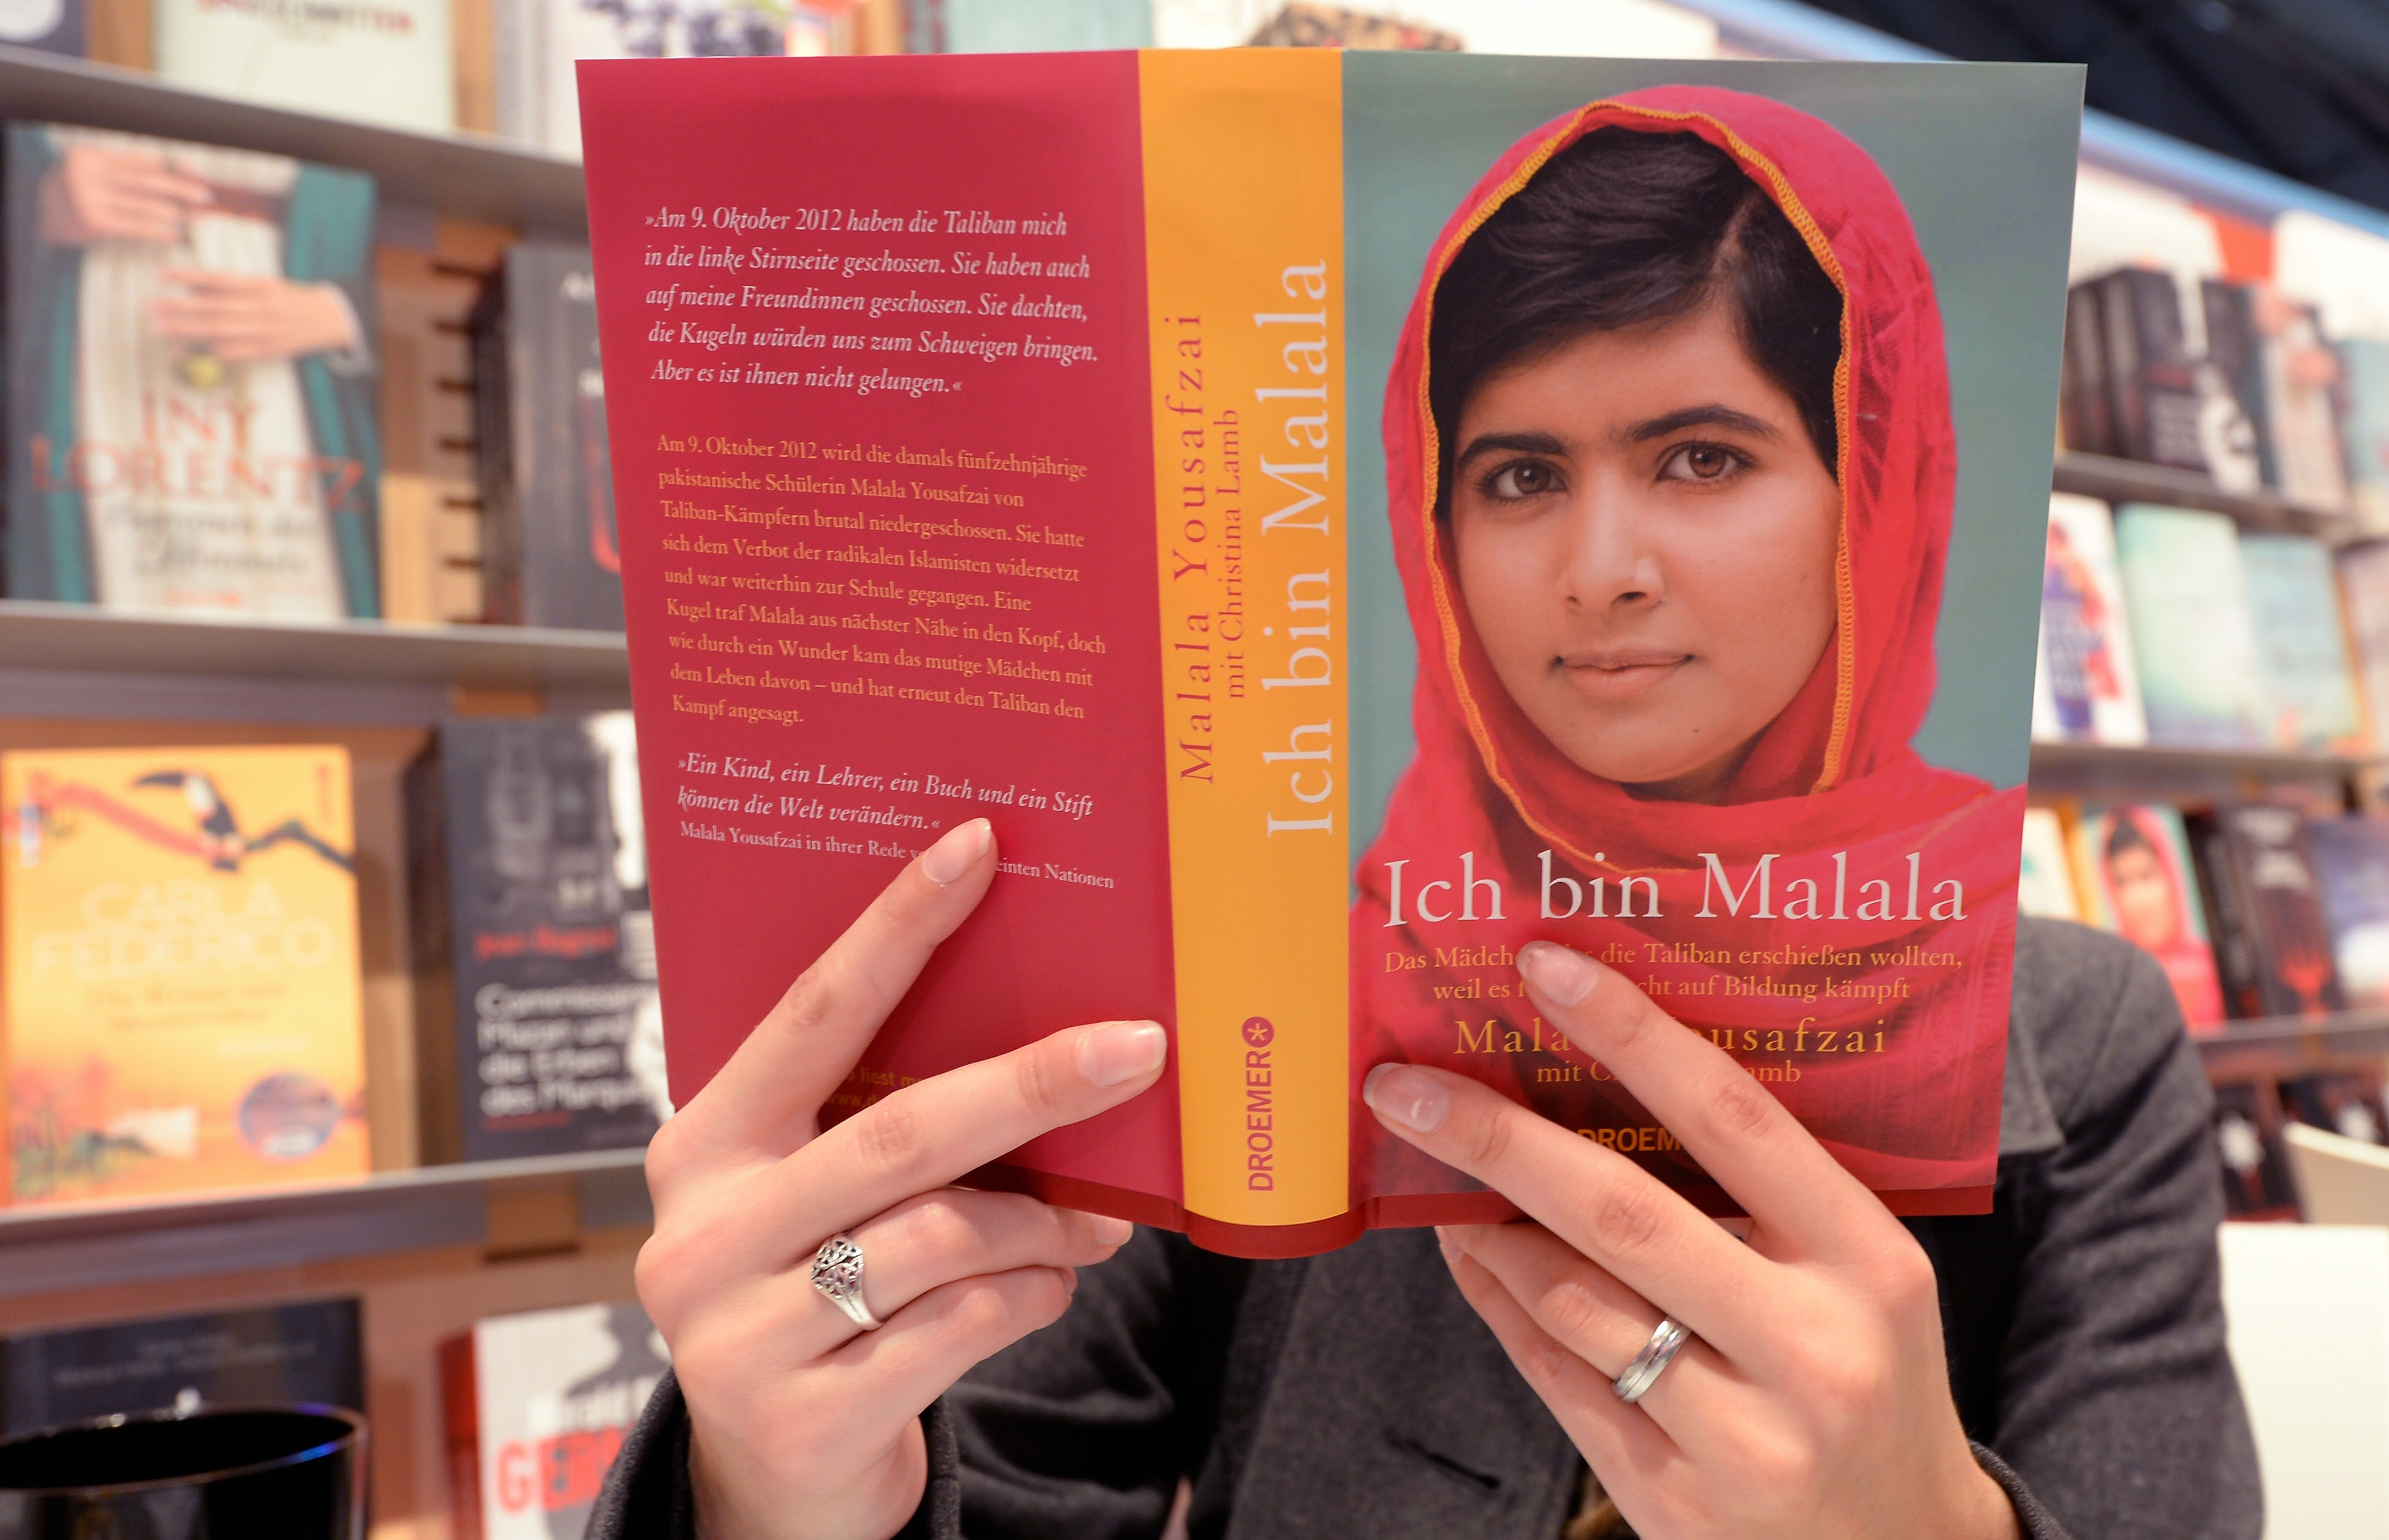 I Am Malala Quotes Malala's Quotes On Nobel Peace Prize Win Only Confirm Why She So